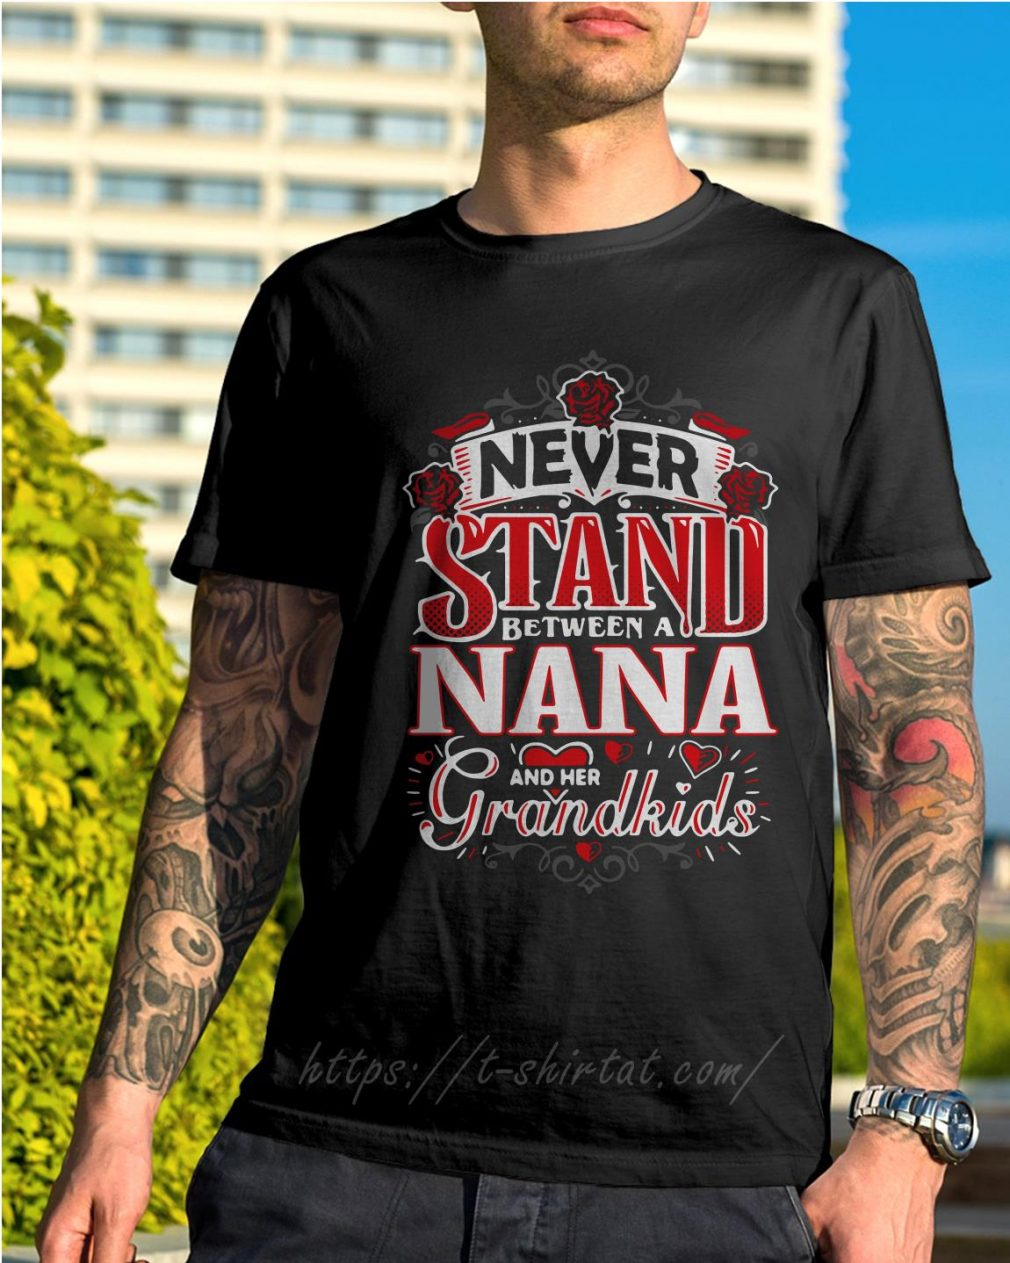 Never stand between a Nana and her grandkids shirtNever stand between a Nana and her grandkids shirt